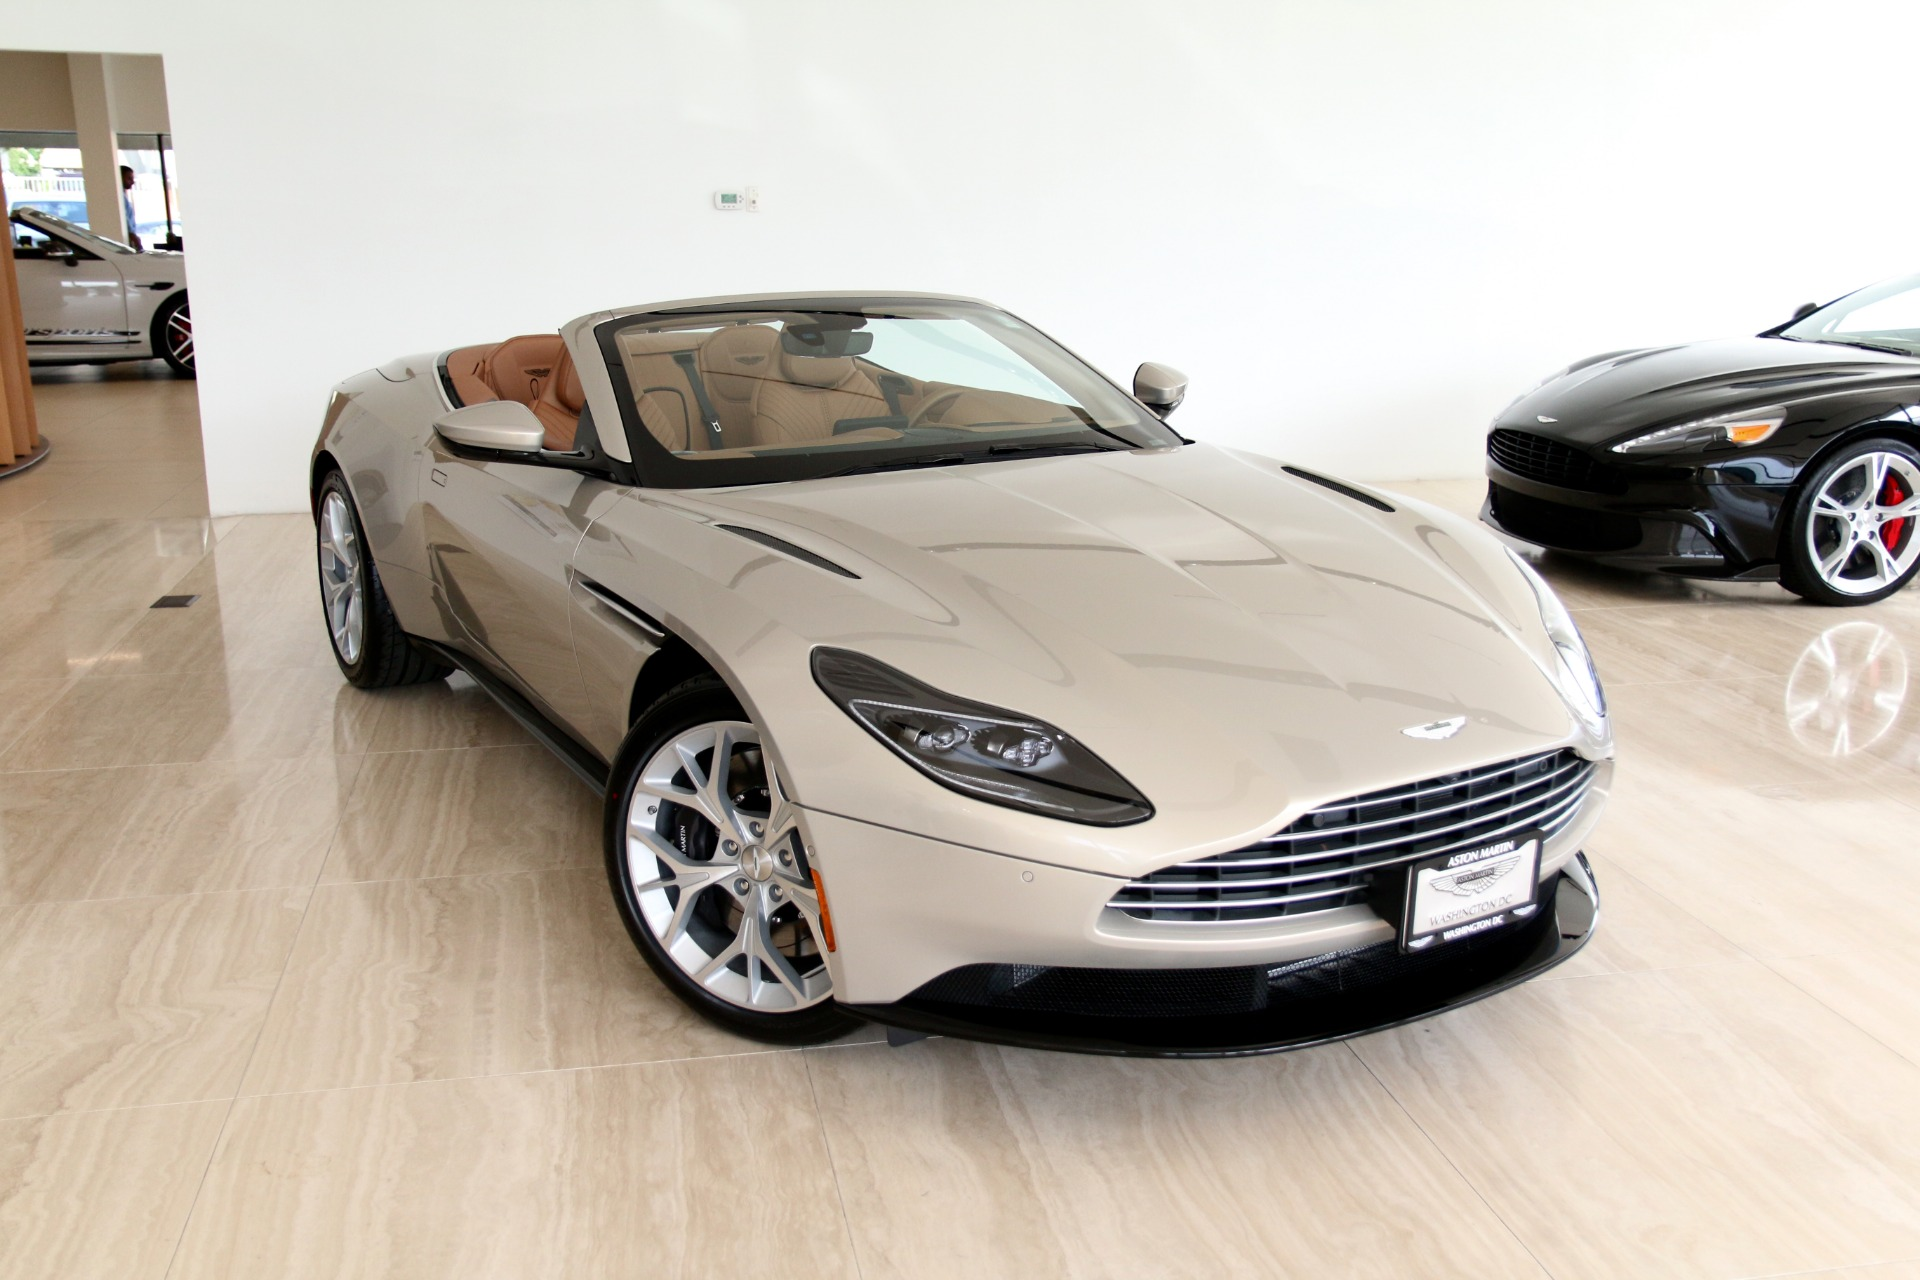 2019 Aston Martin Db11 Volante Stock 9nm05888 For Sale Near Vienna Va Va Aston Martin Dealer